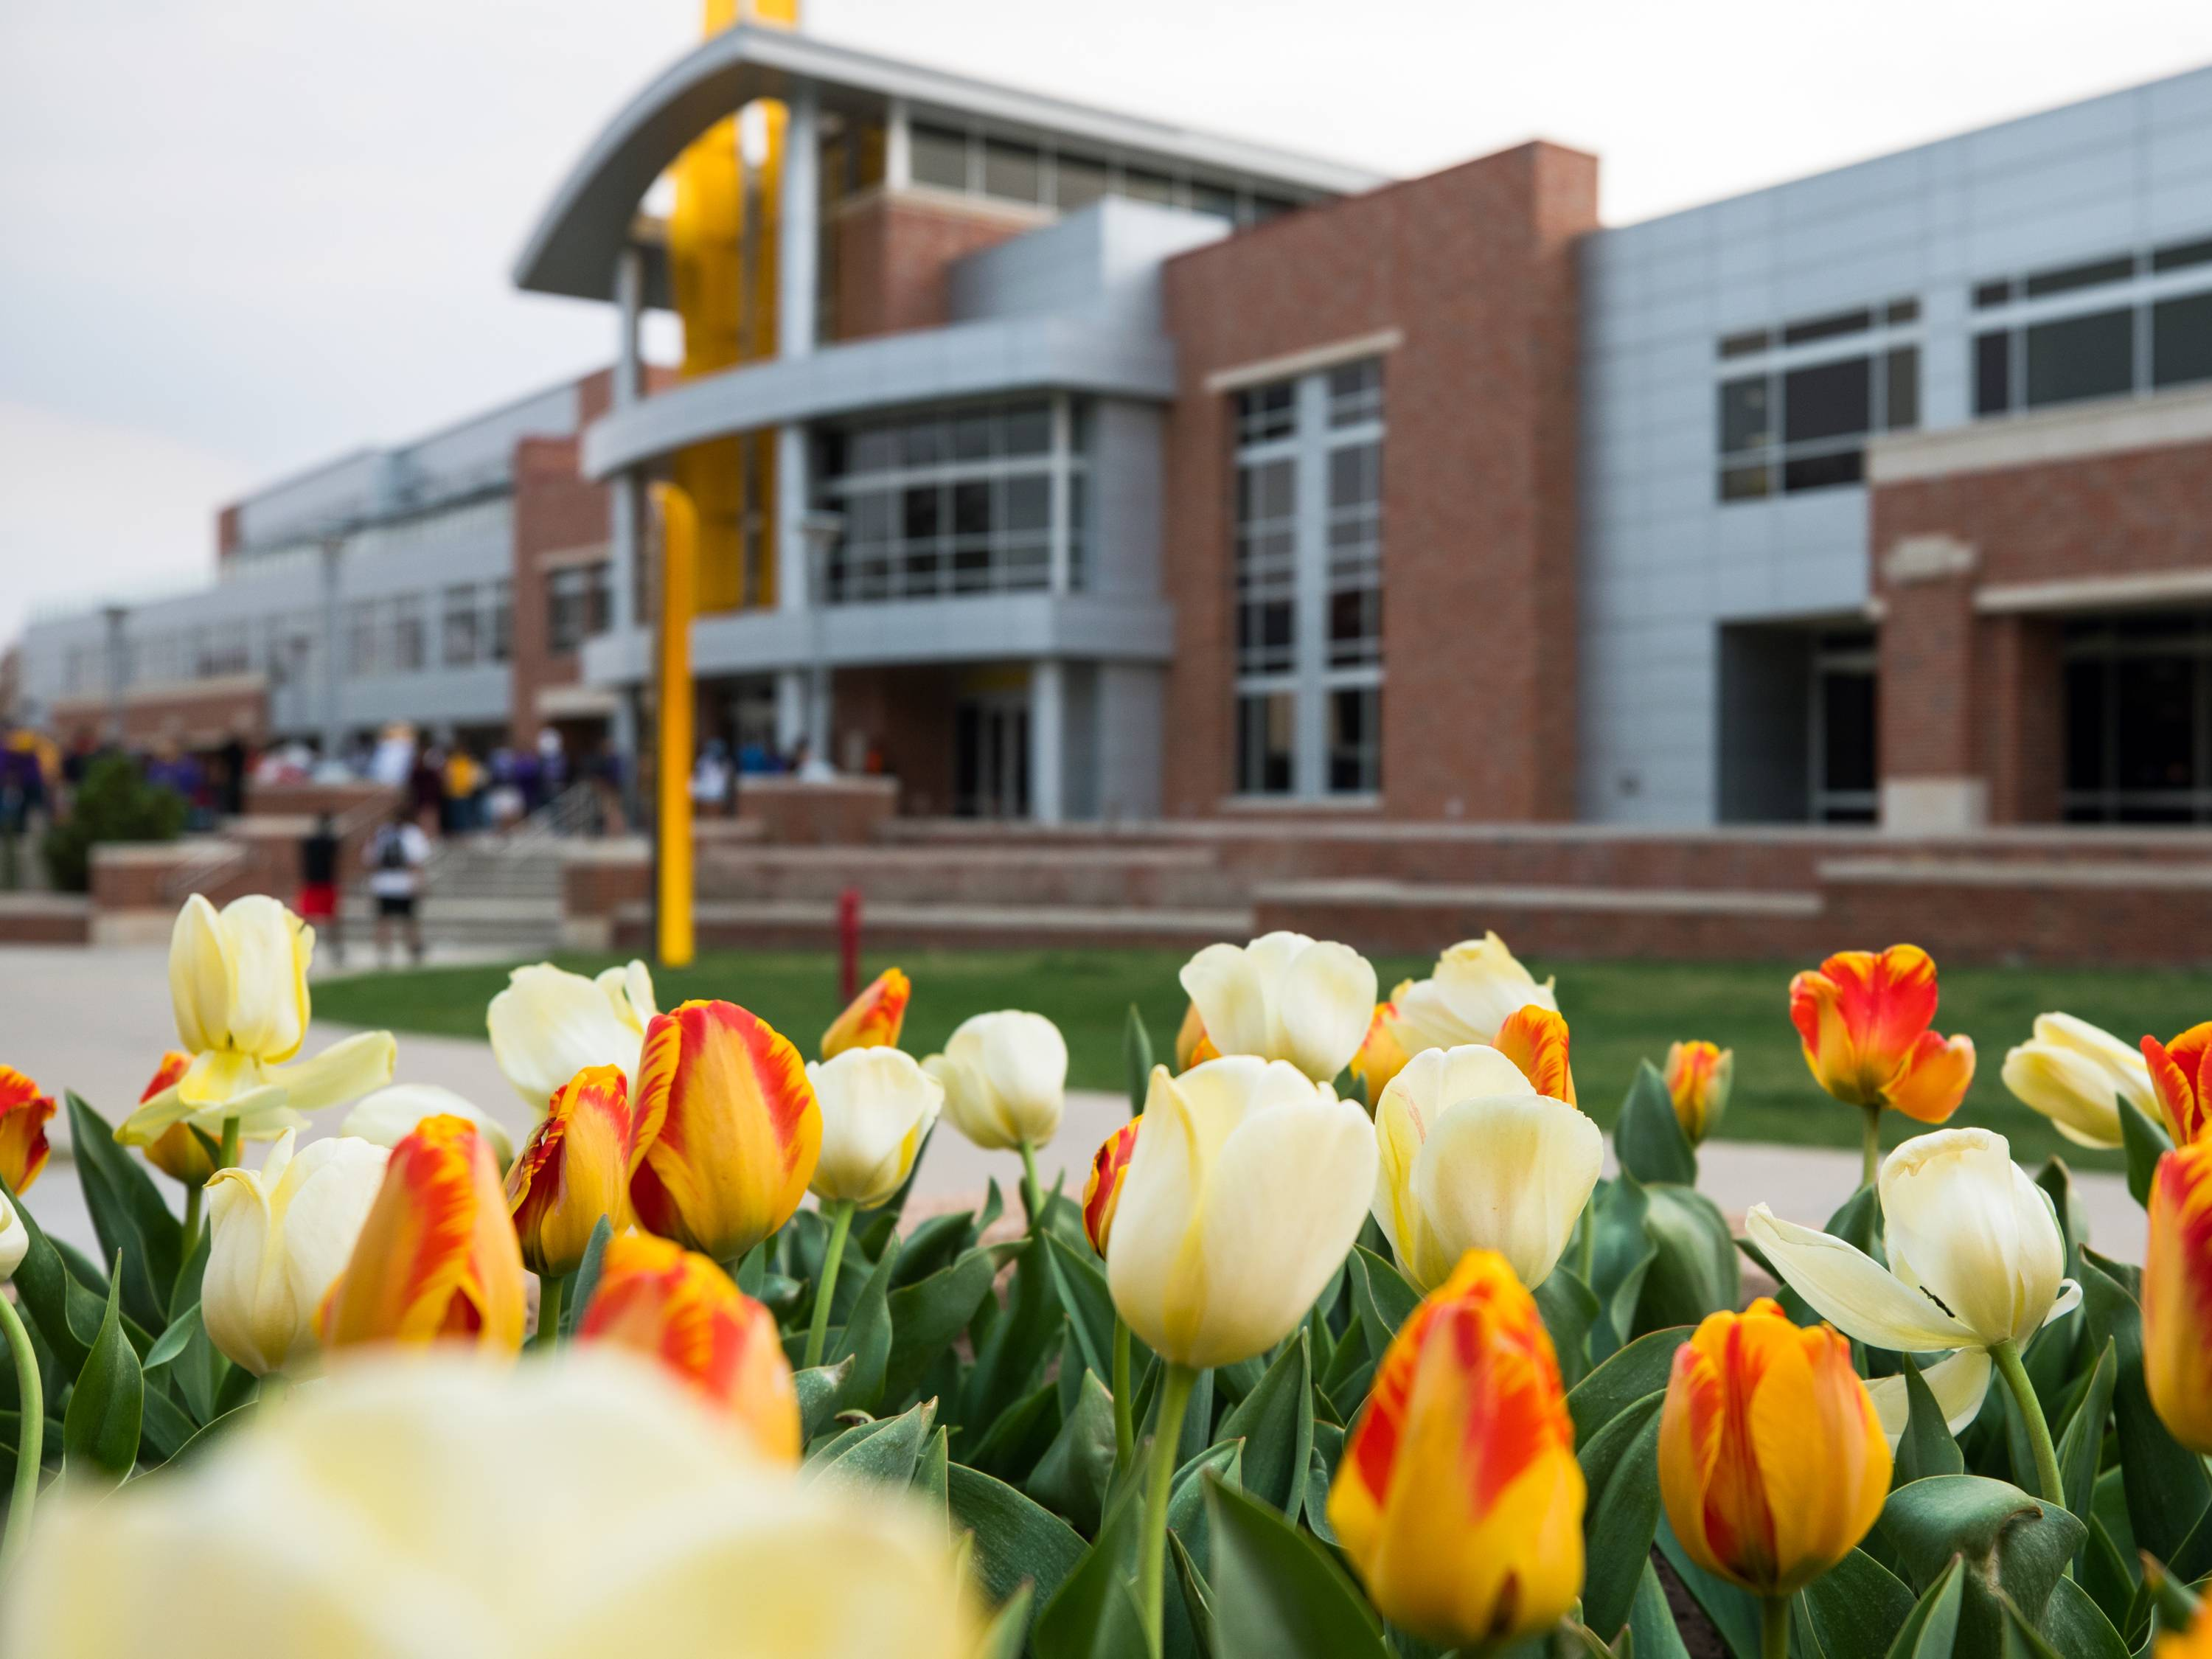 Tulips and a view of Rhatigan Student Center